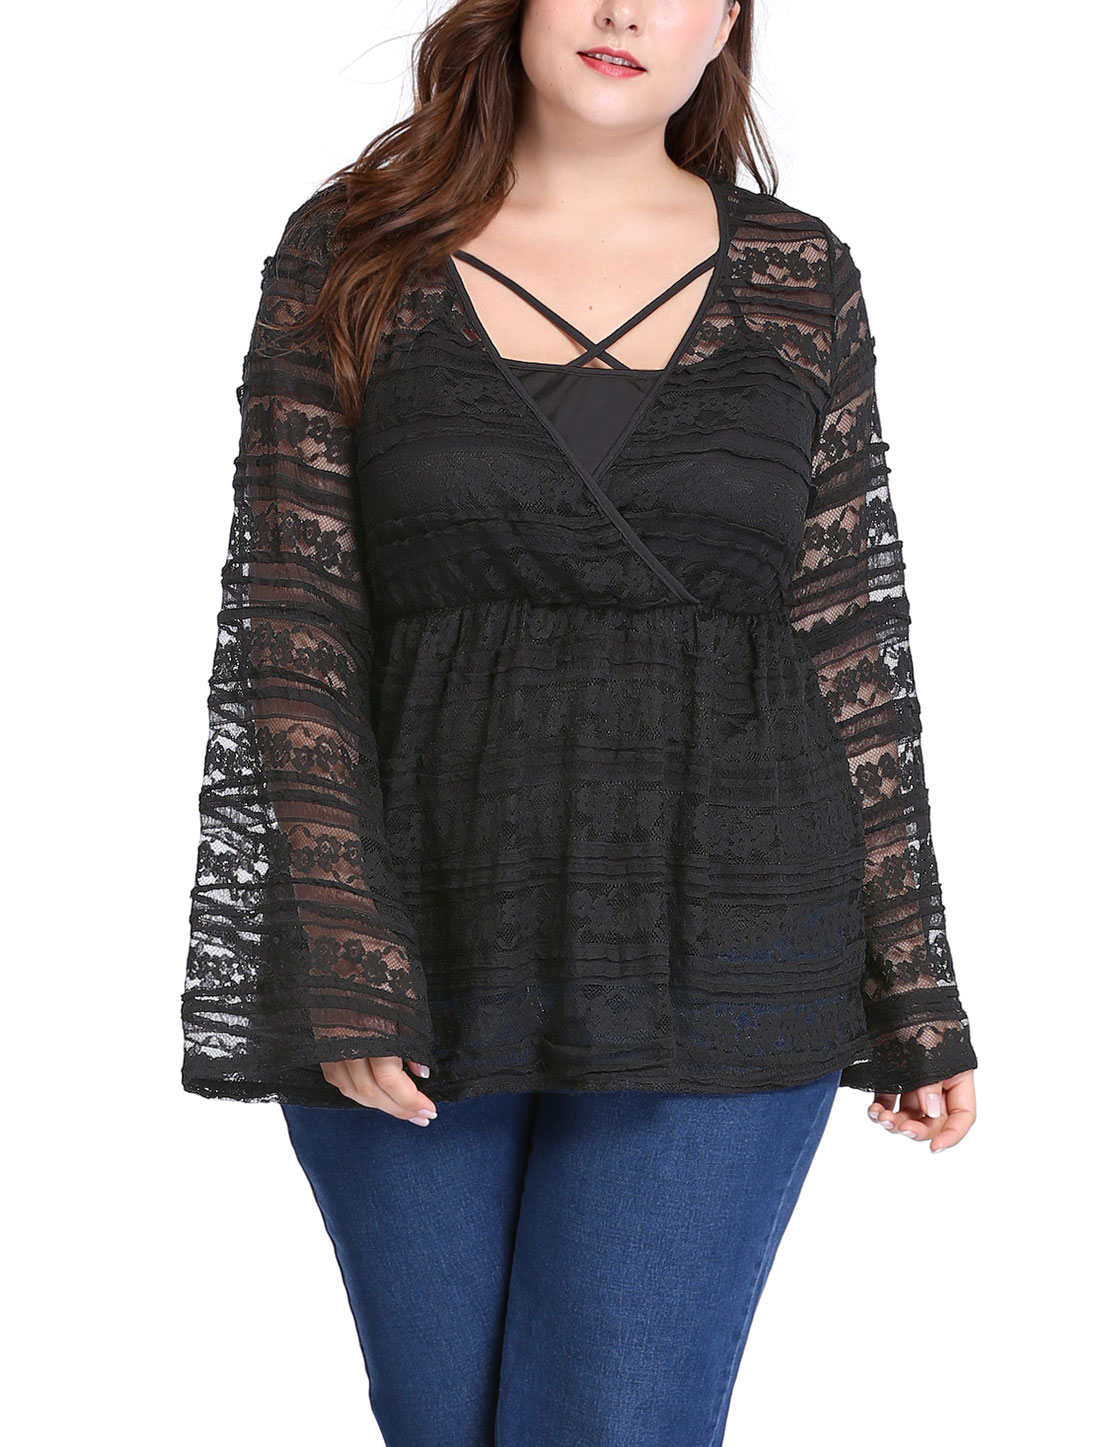 Women Plus Size Bell Sleeves Sheer Lace Babydoll Top w Camisole Sets Black 2X